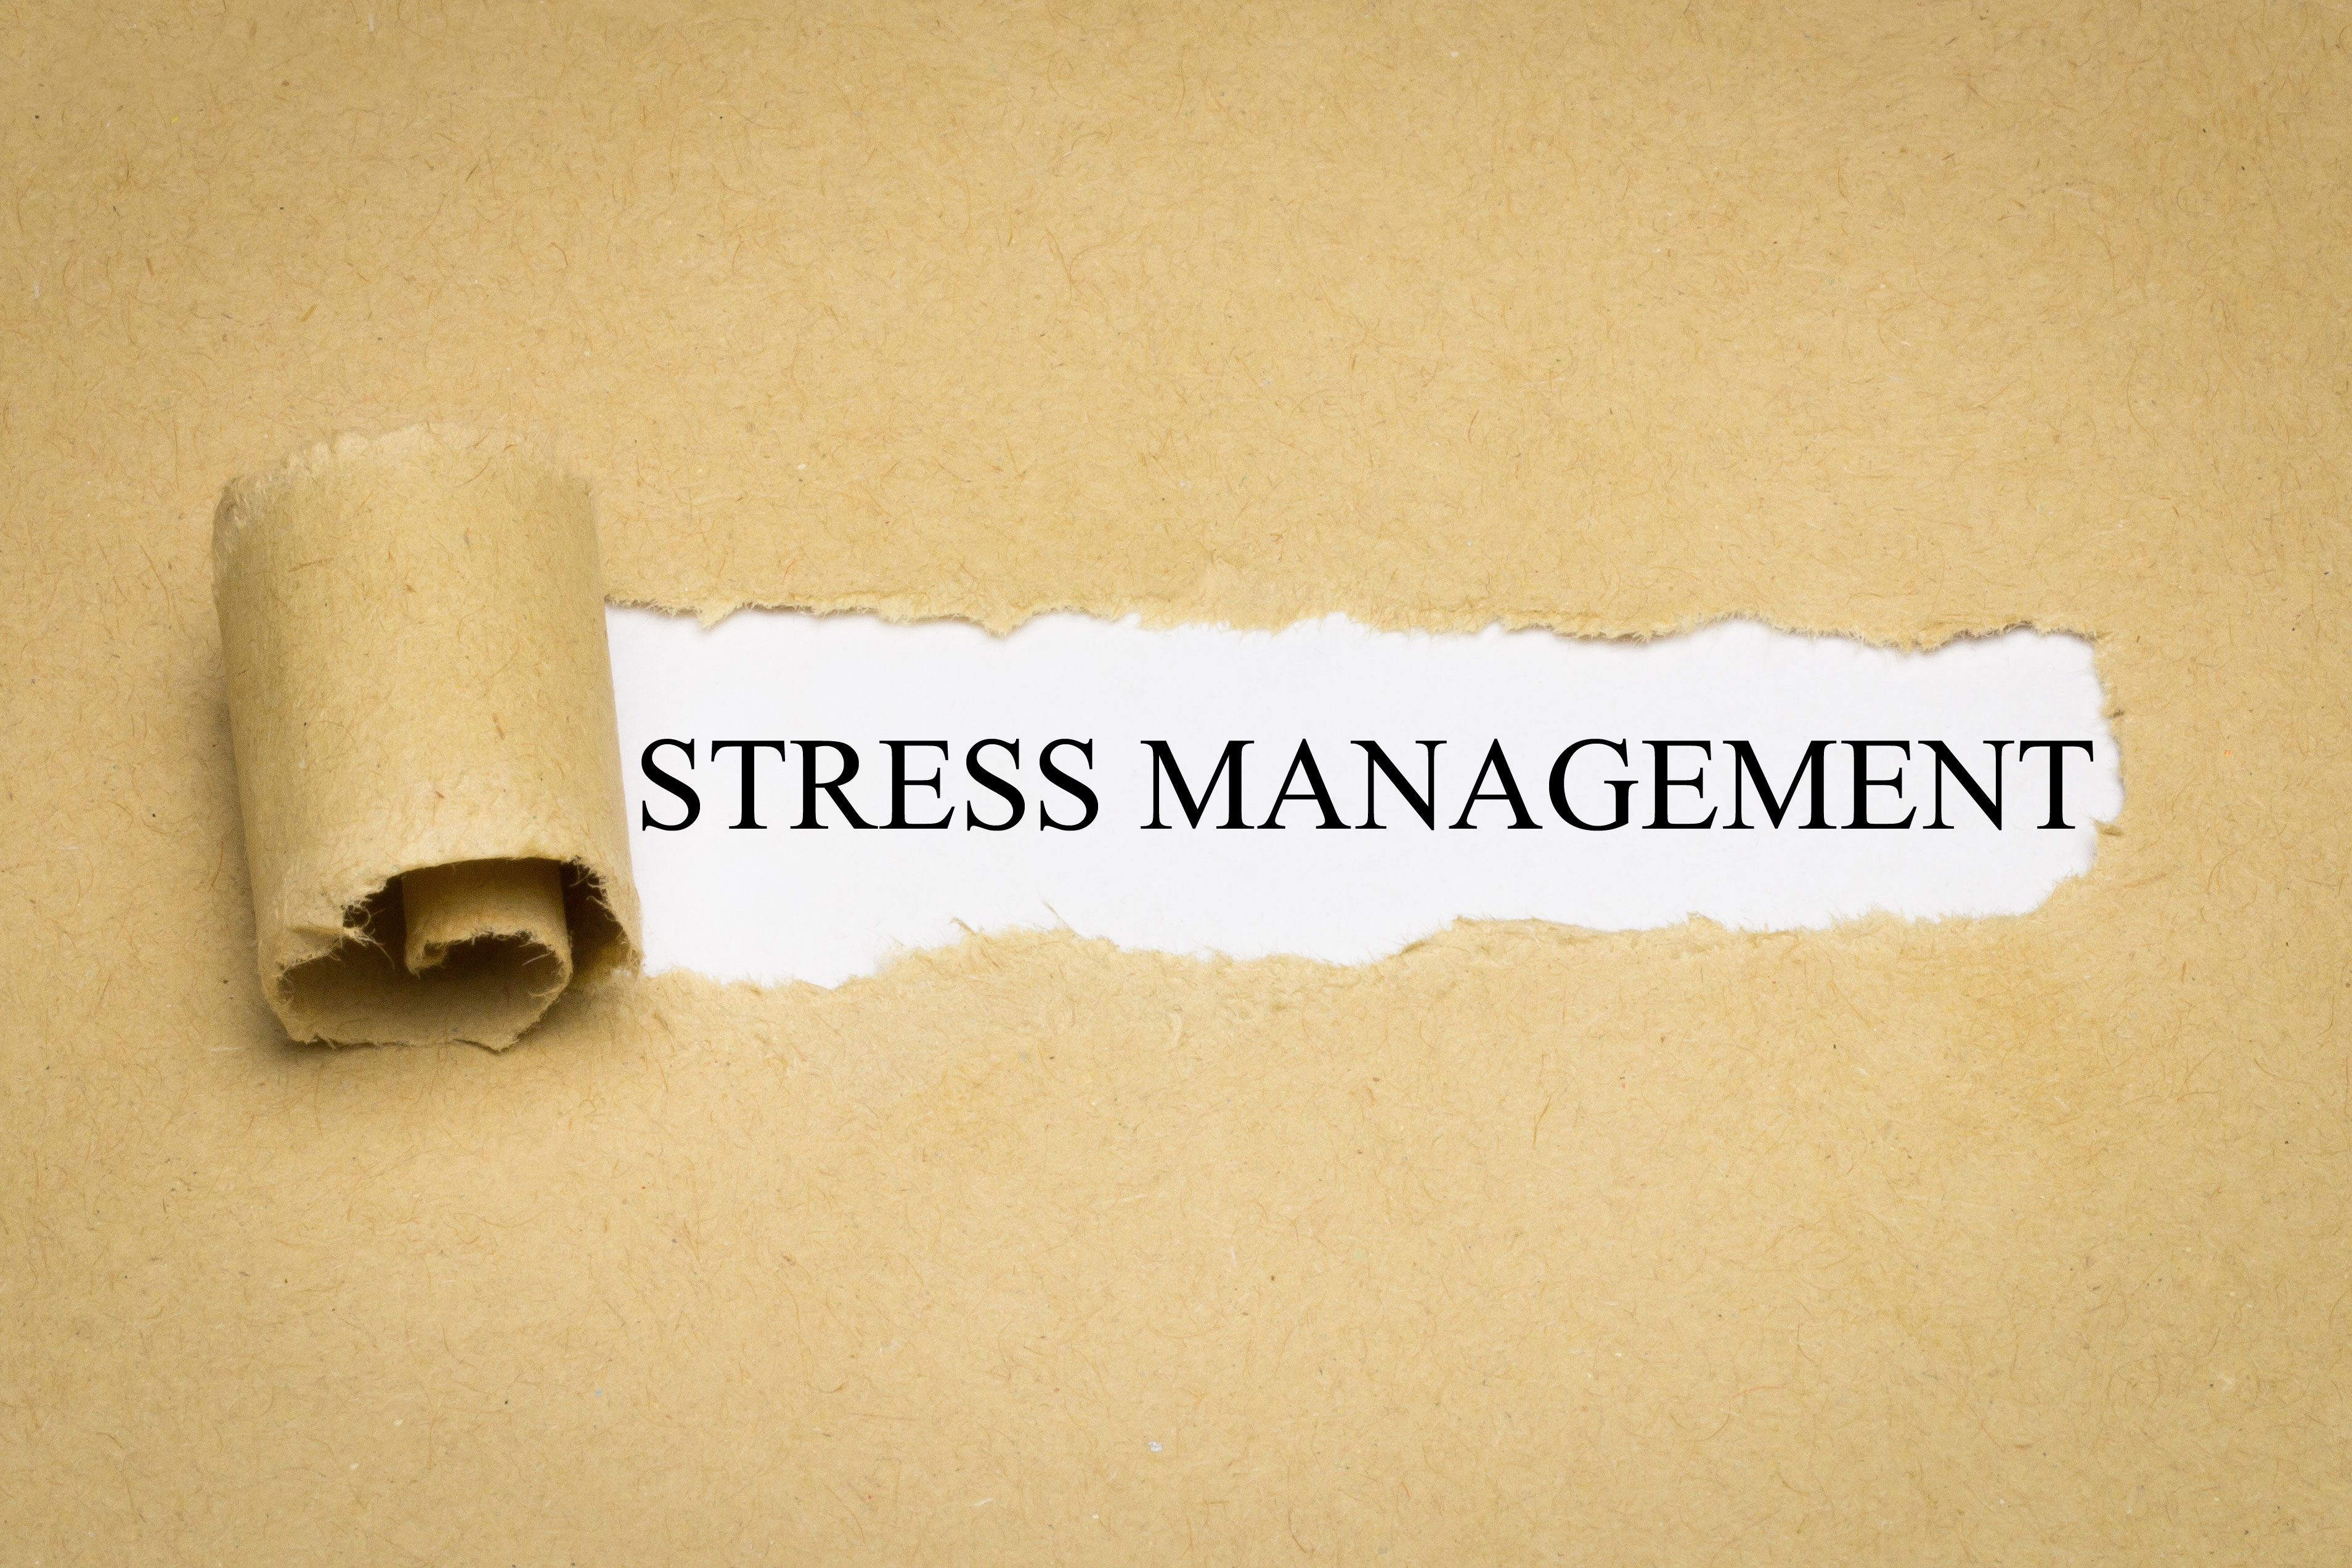 reaction paper on stress management Signs of stress overload stress management tips minimize & manage your  stress  this natural reaction is known as the stress response working properly .